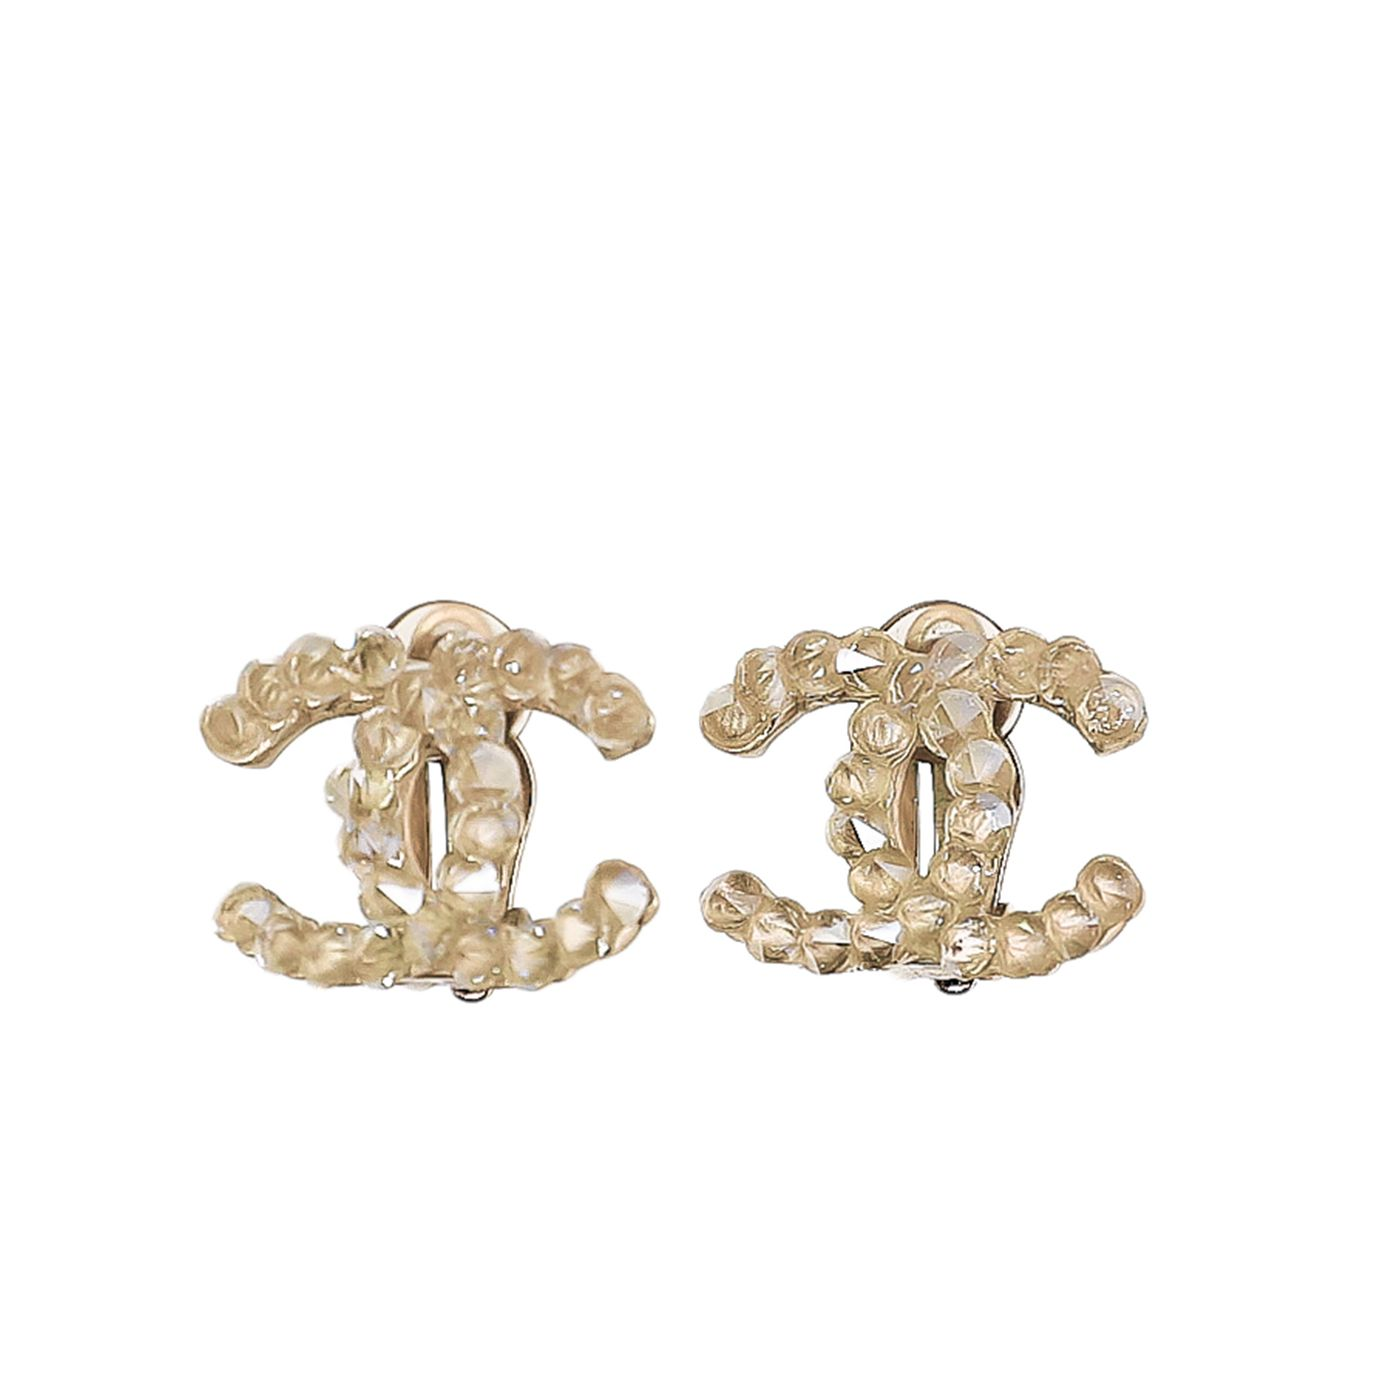 Chanel Gold Tone CC Crystal Clip On Earrings